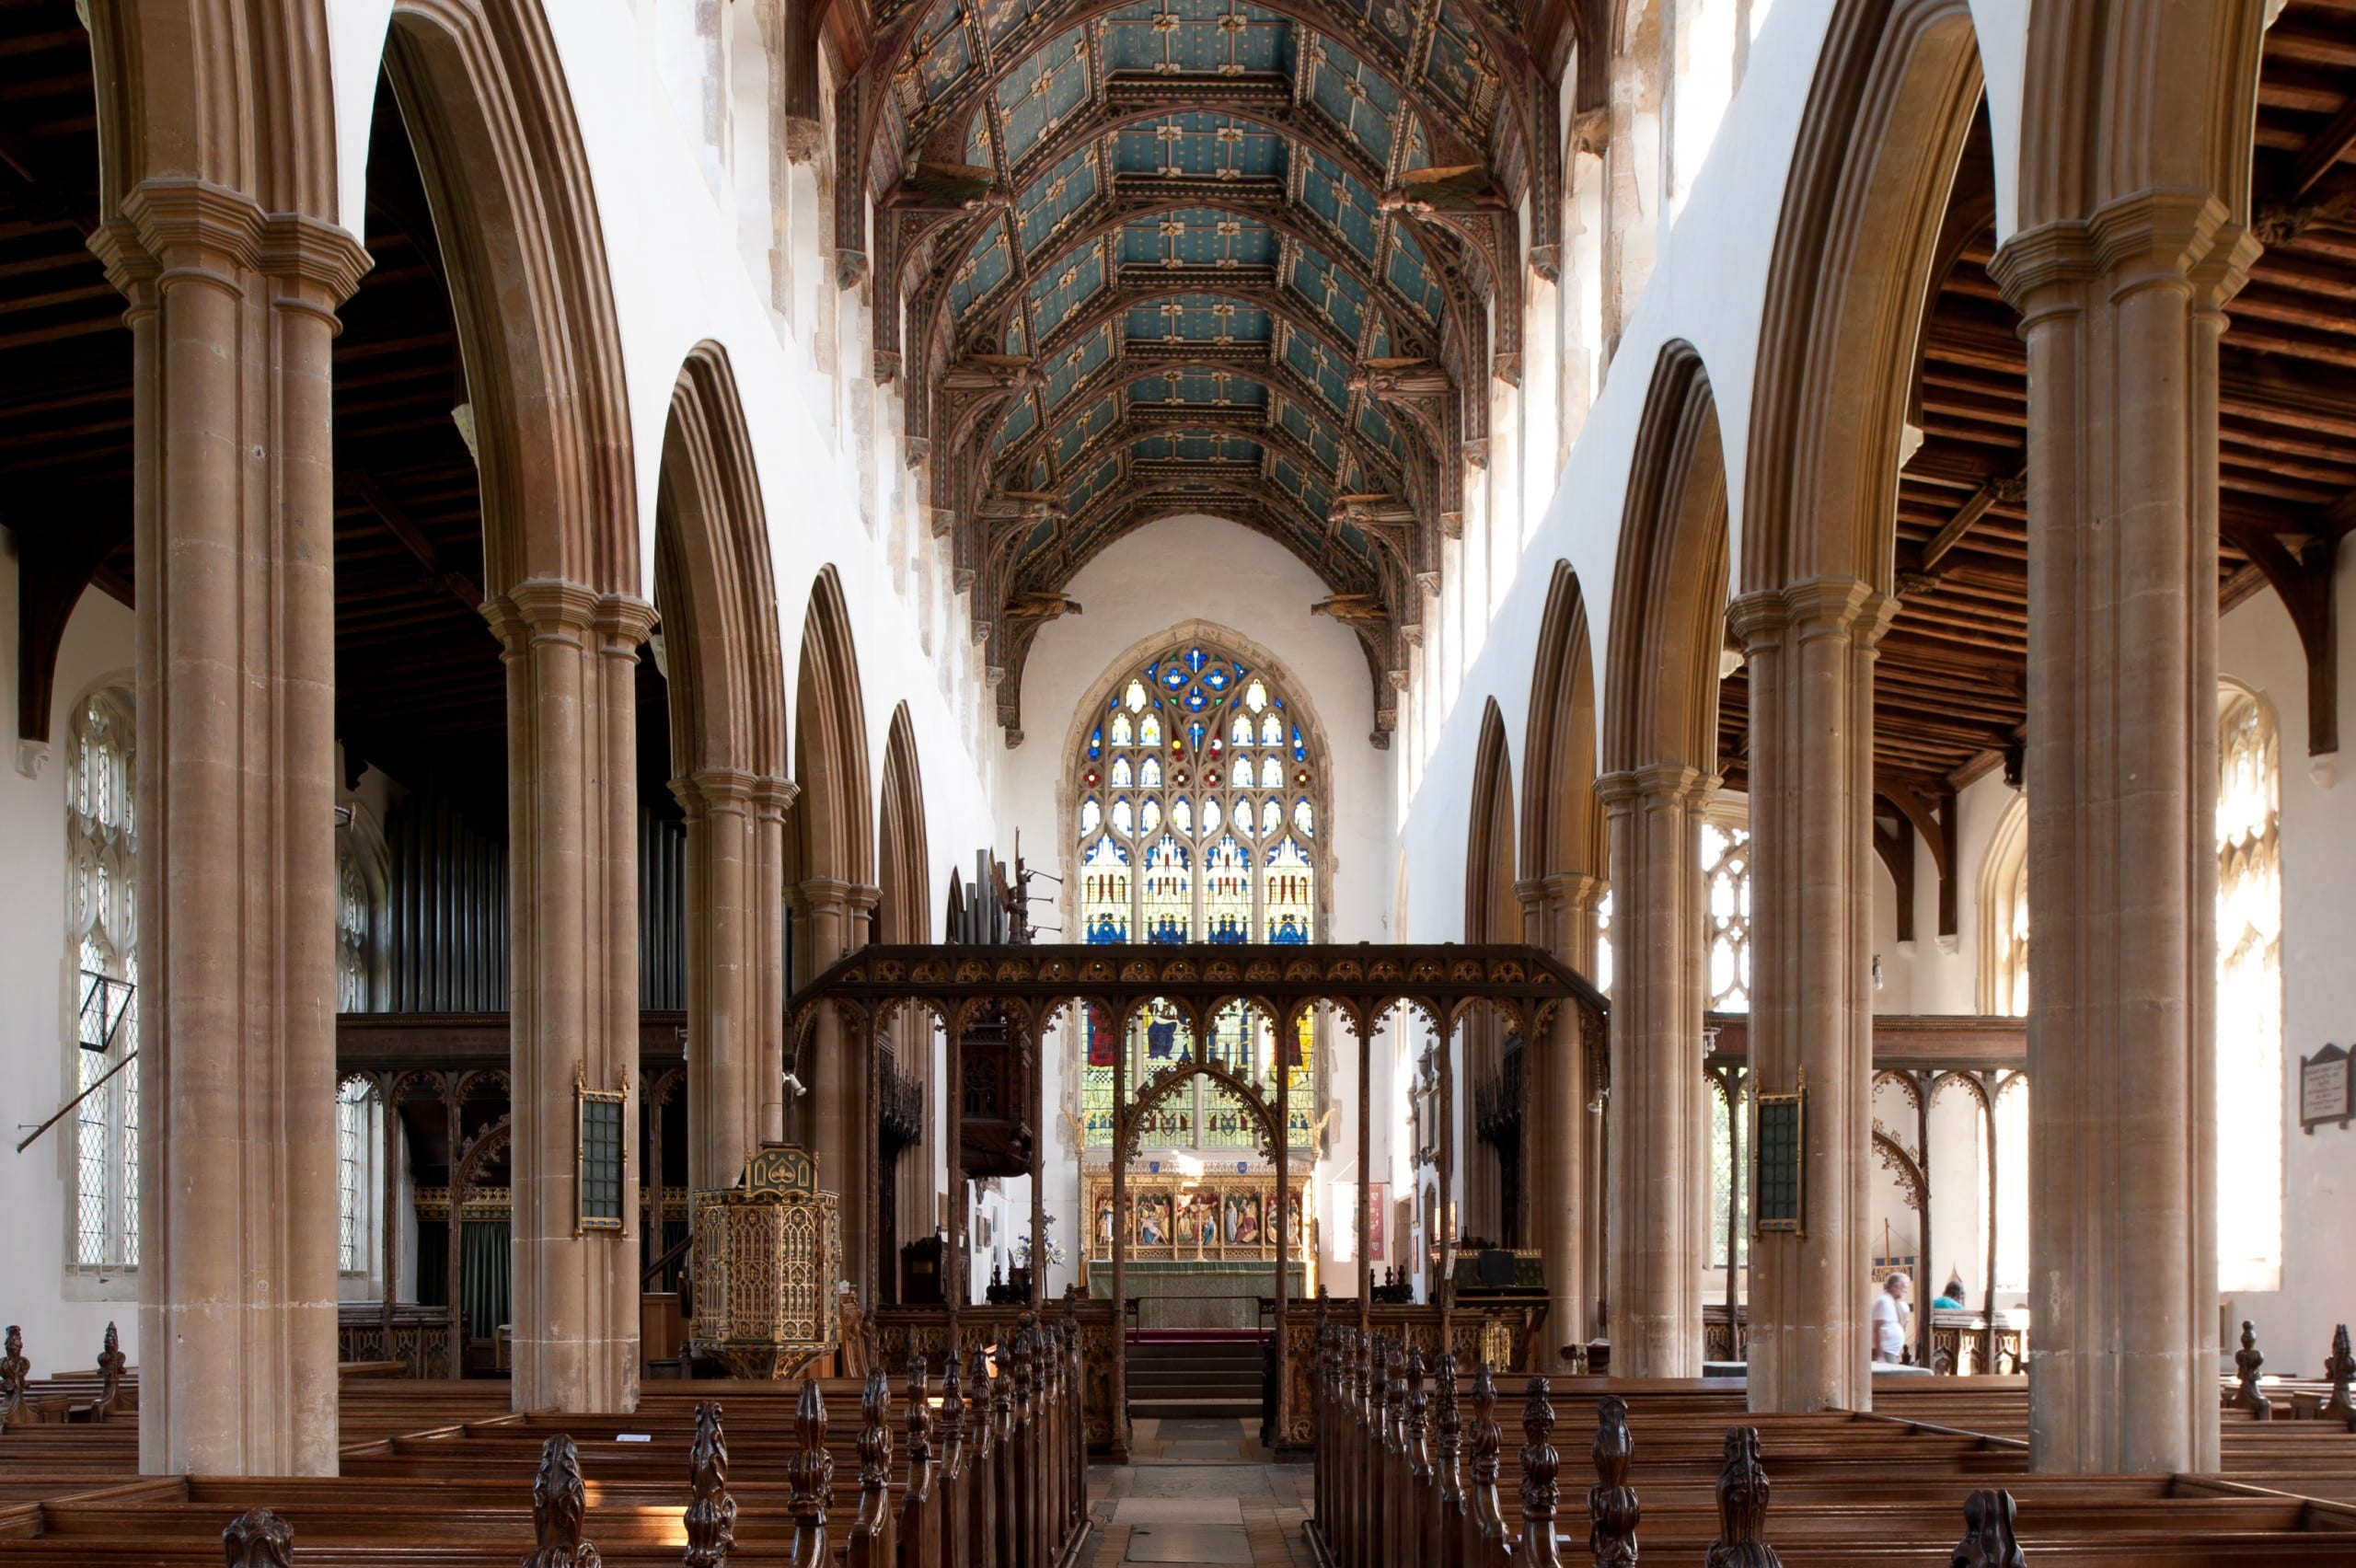 Fig. 8: Interior of the former chapel of ease, now parish church, of St. Edmund, Southwold (Suffolk), England, ca. 1430–60, view looking east with 15th-century screenwork in middle ground (author's photo).